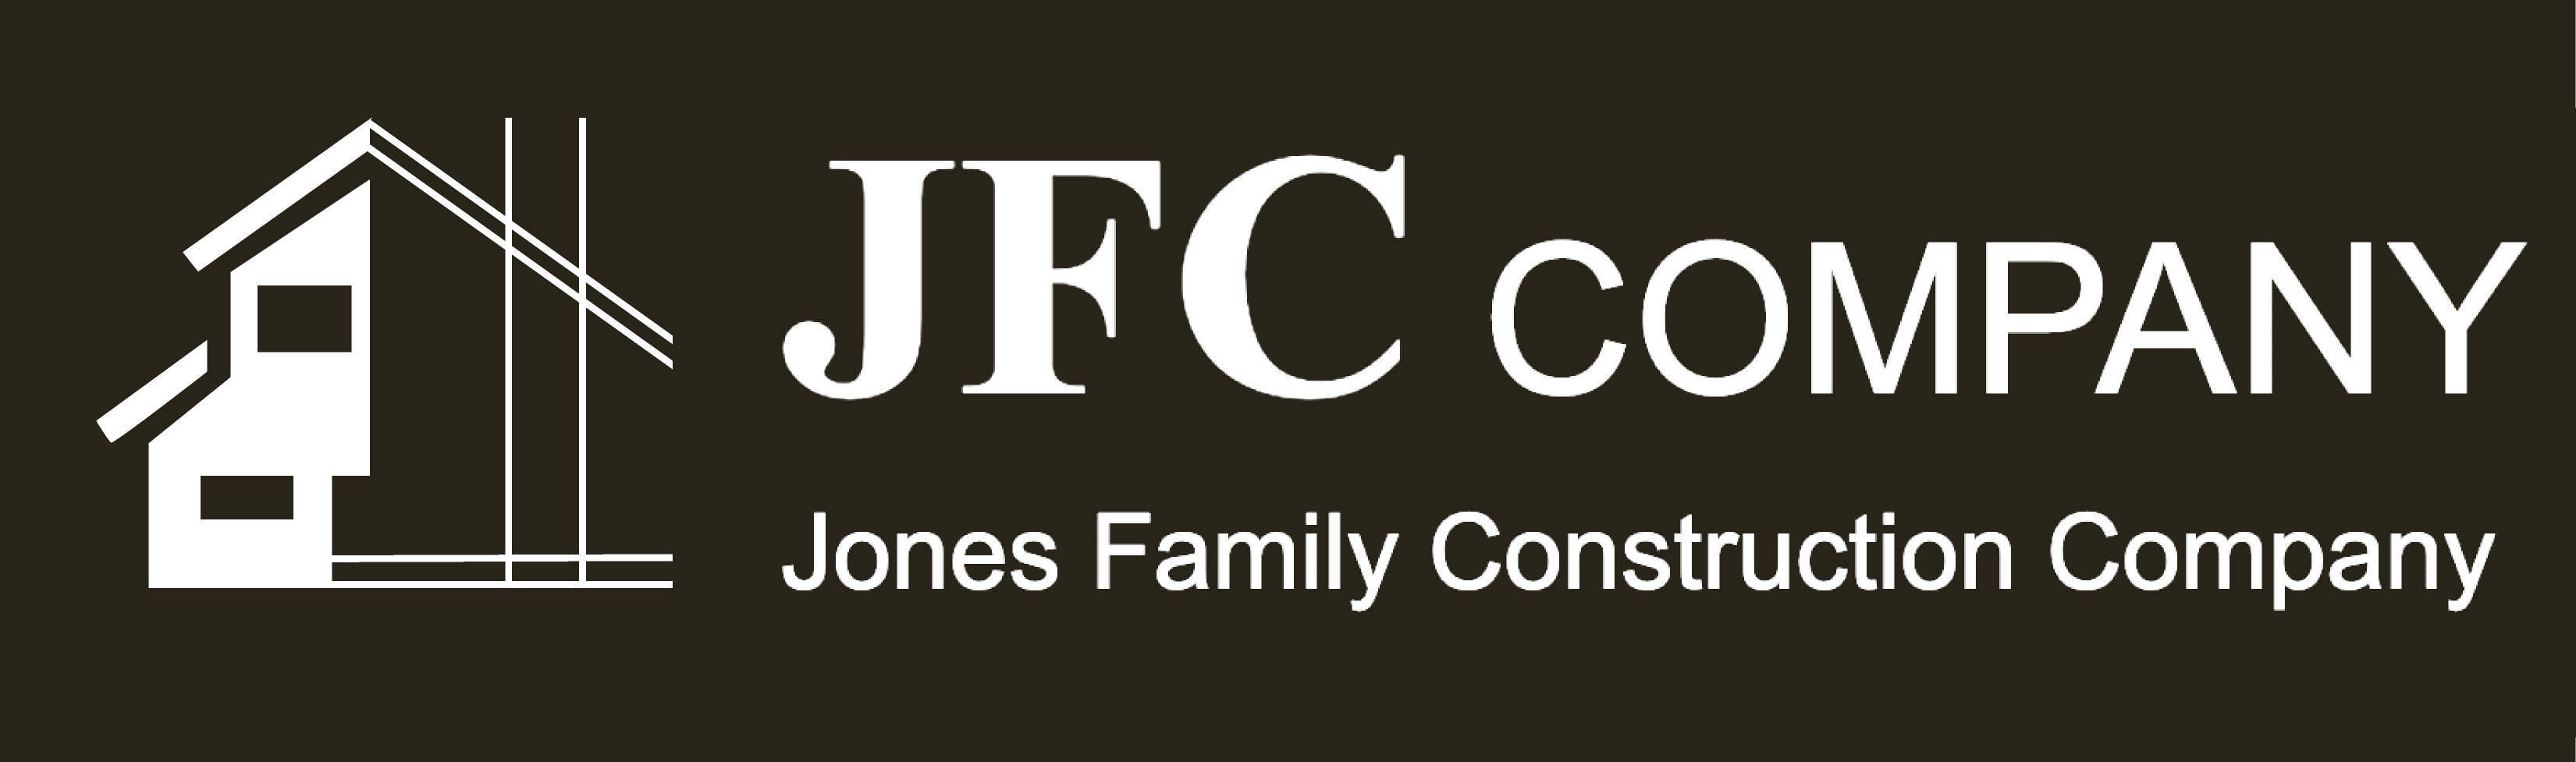 JFC - Jones Family Construction Company Payson Arizona